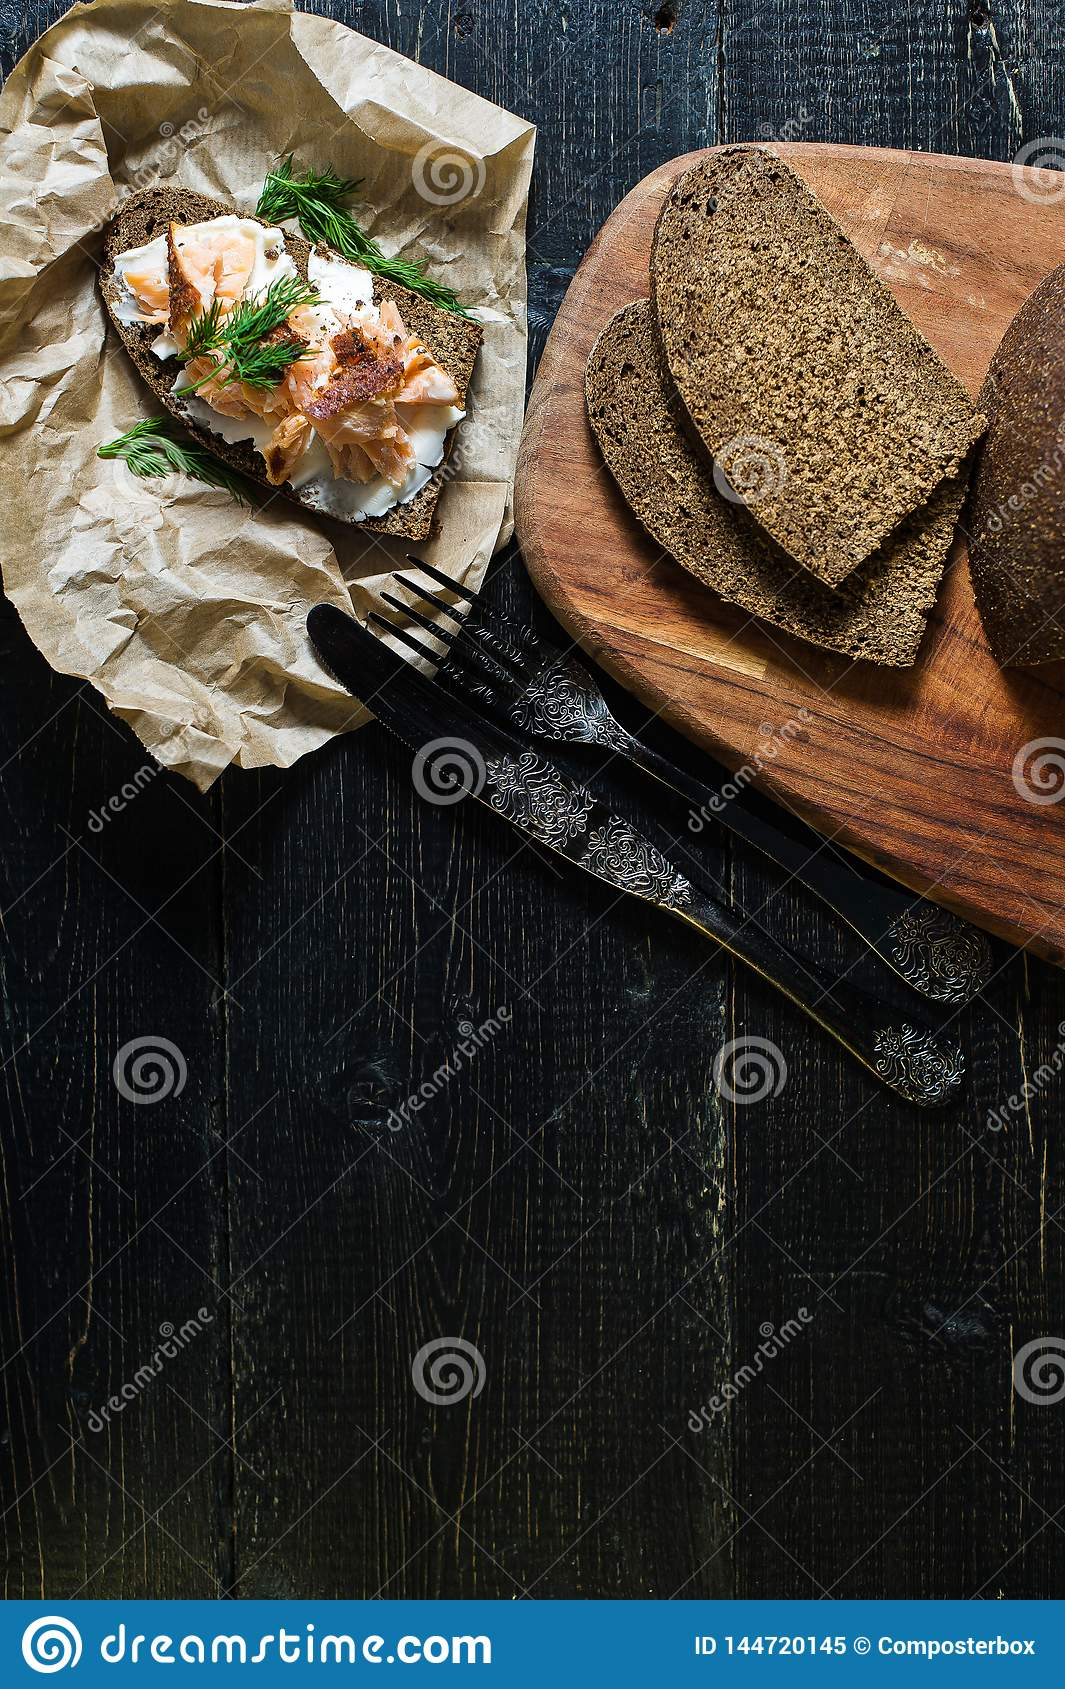 Scandinavian sandwich with smoked salmon fillet on black bread with soft cheese